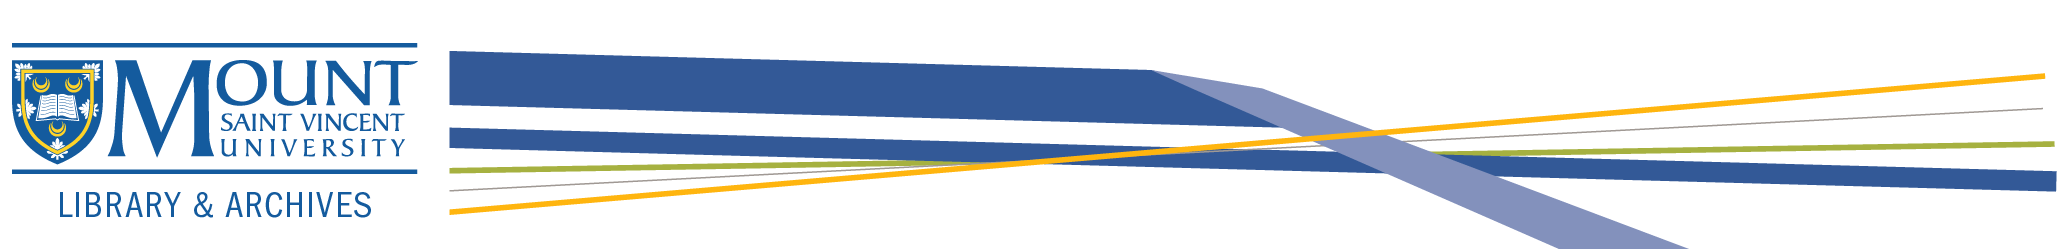 MSVU Library & Archives logo